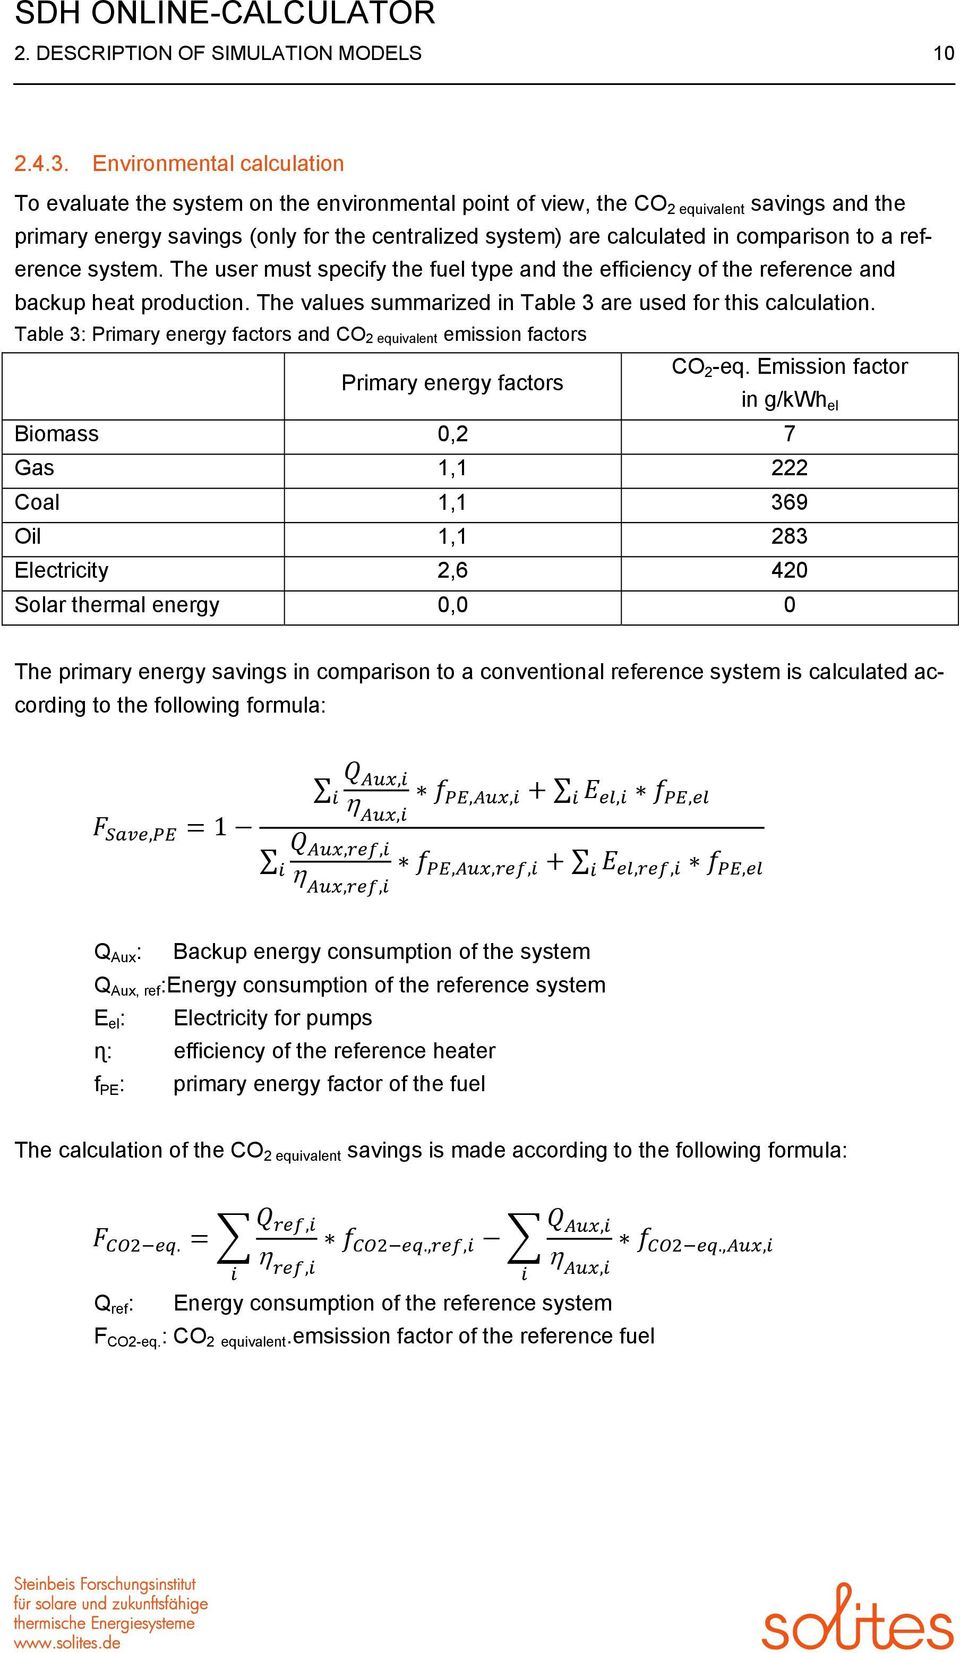 comparison to a reference system. The user must specify the fuel type and the efficiency of the reference and backup heat production. The values summarized in Table 3 are used for this calculation.